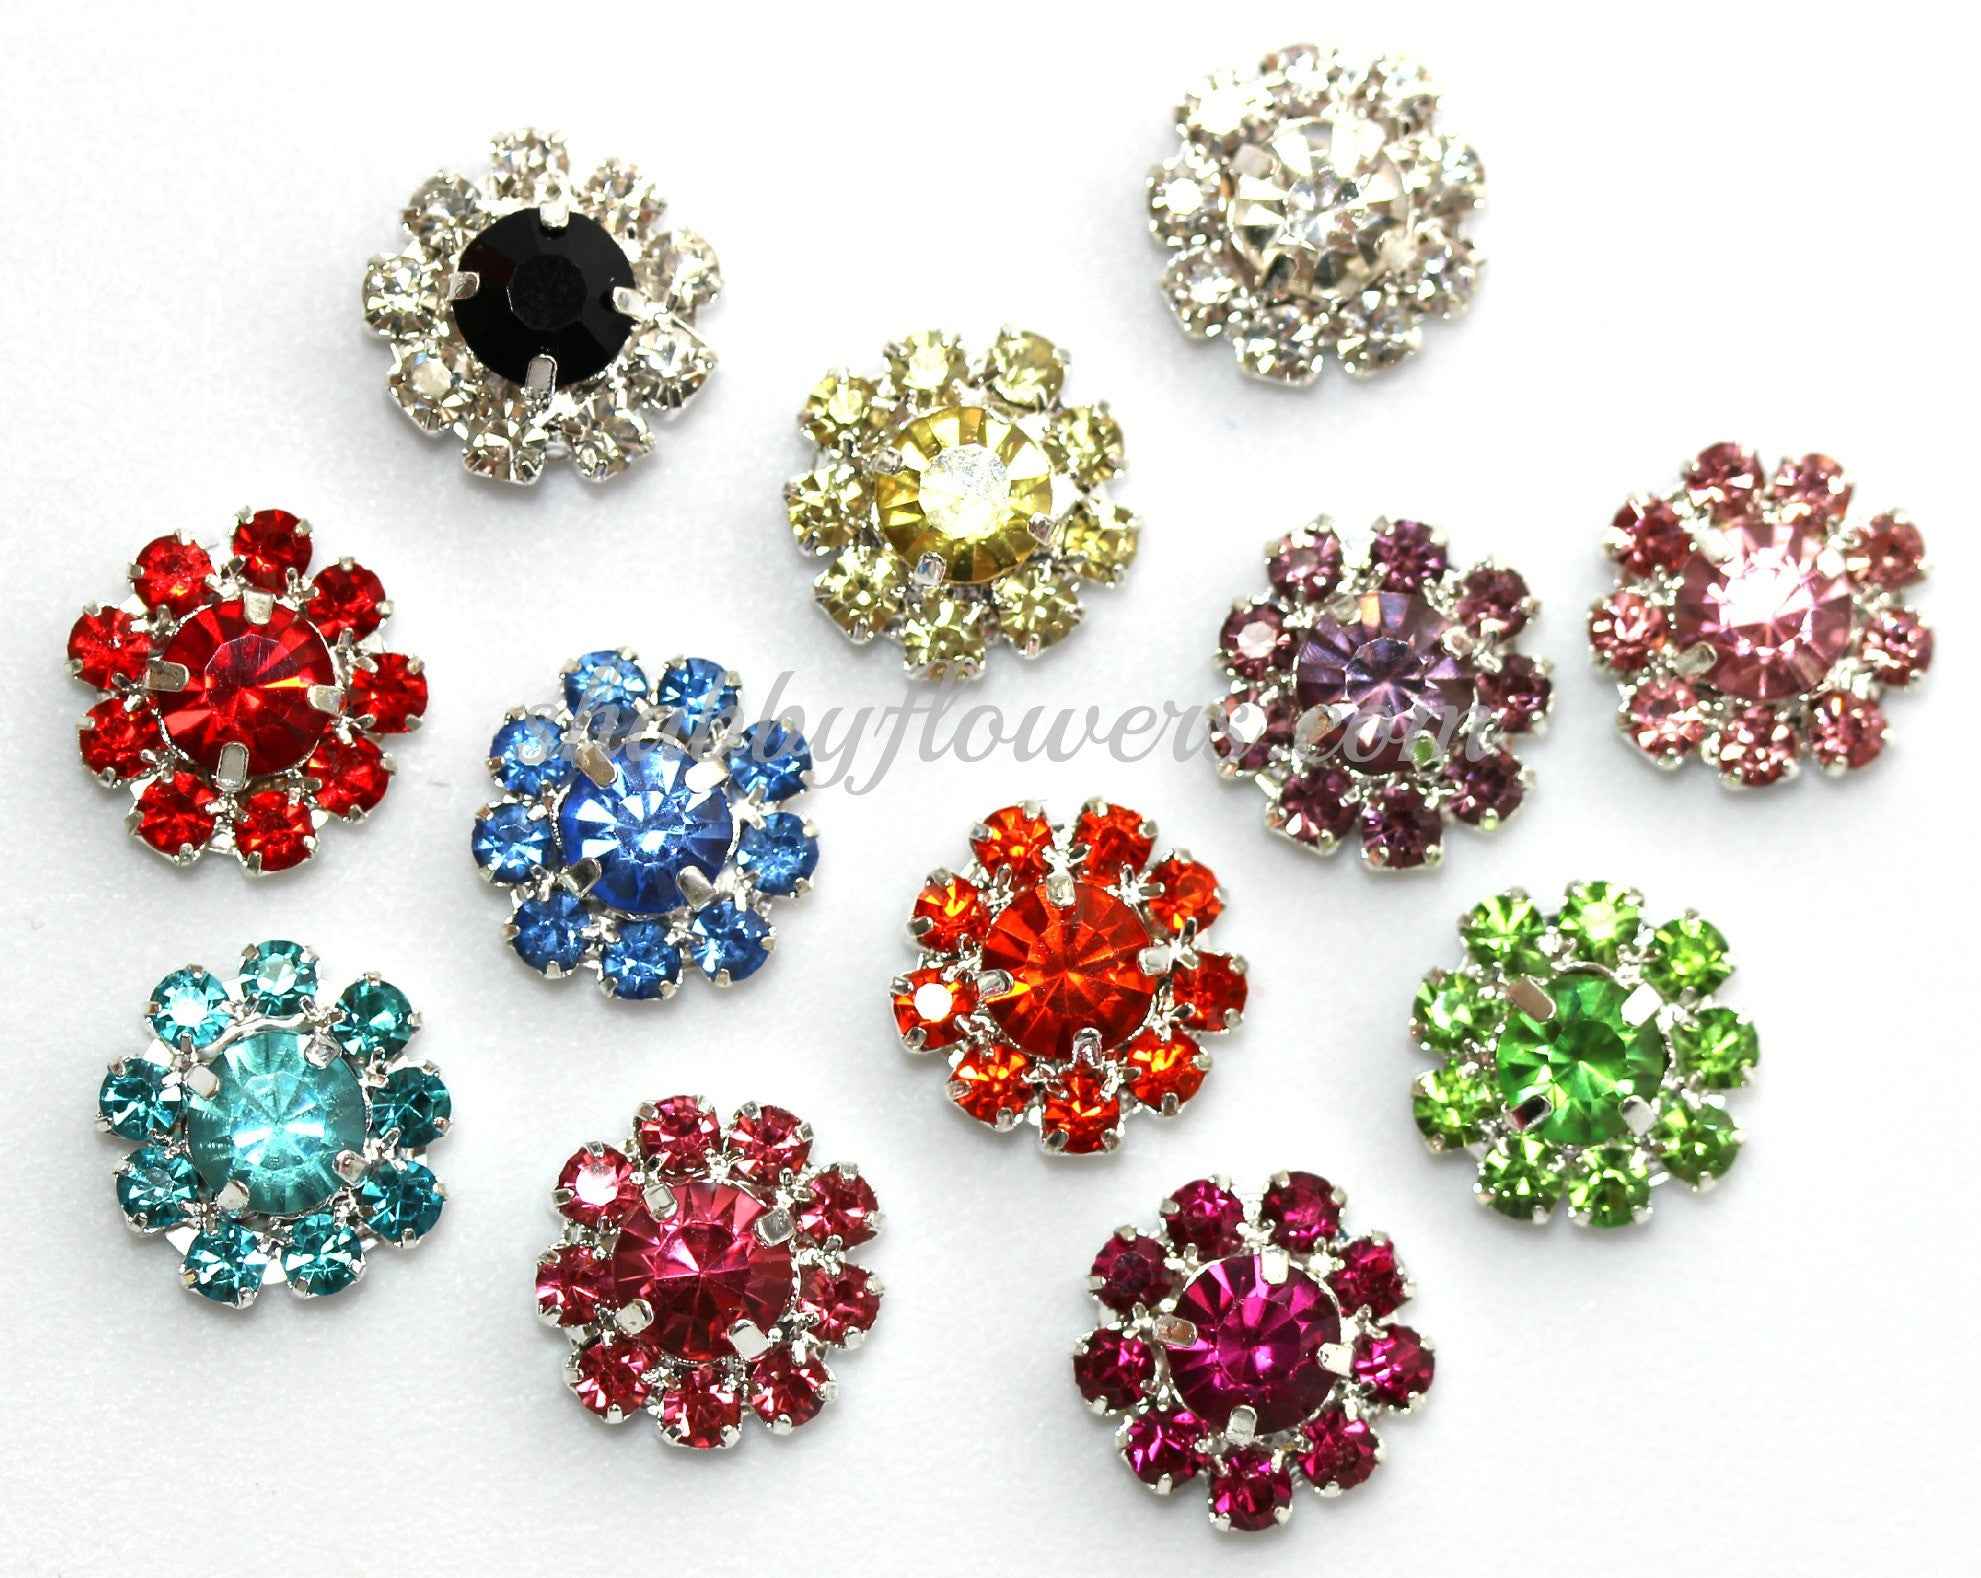 Embellishment - Small Rhinestone Grab Bag (7 colors) - shabbyflowers.com